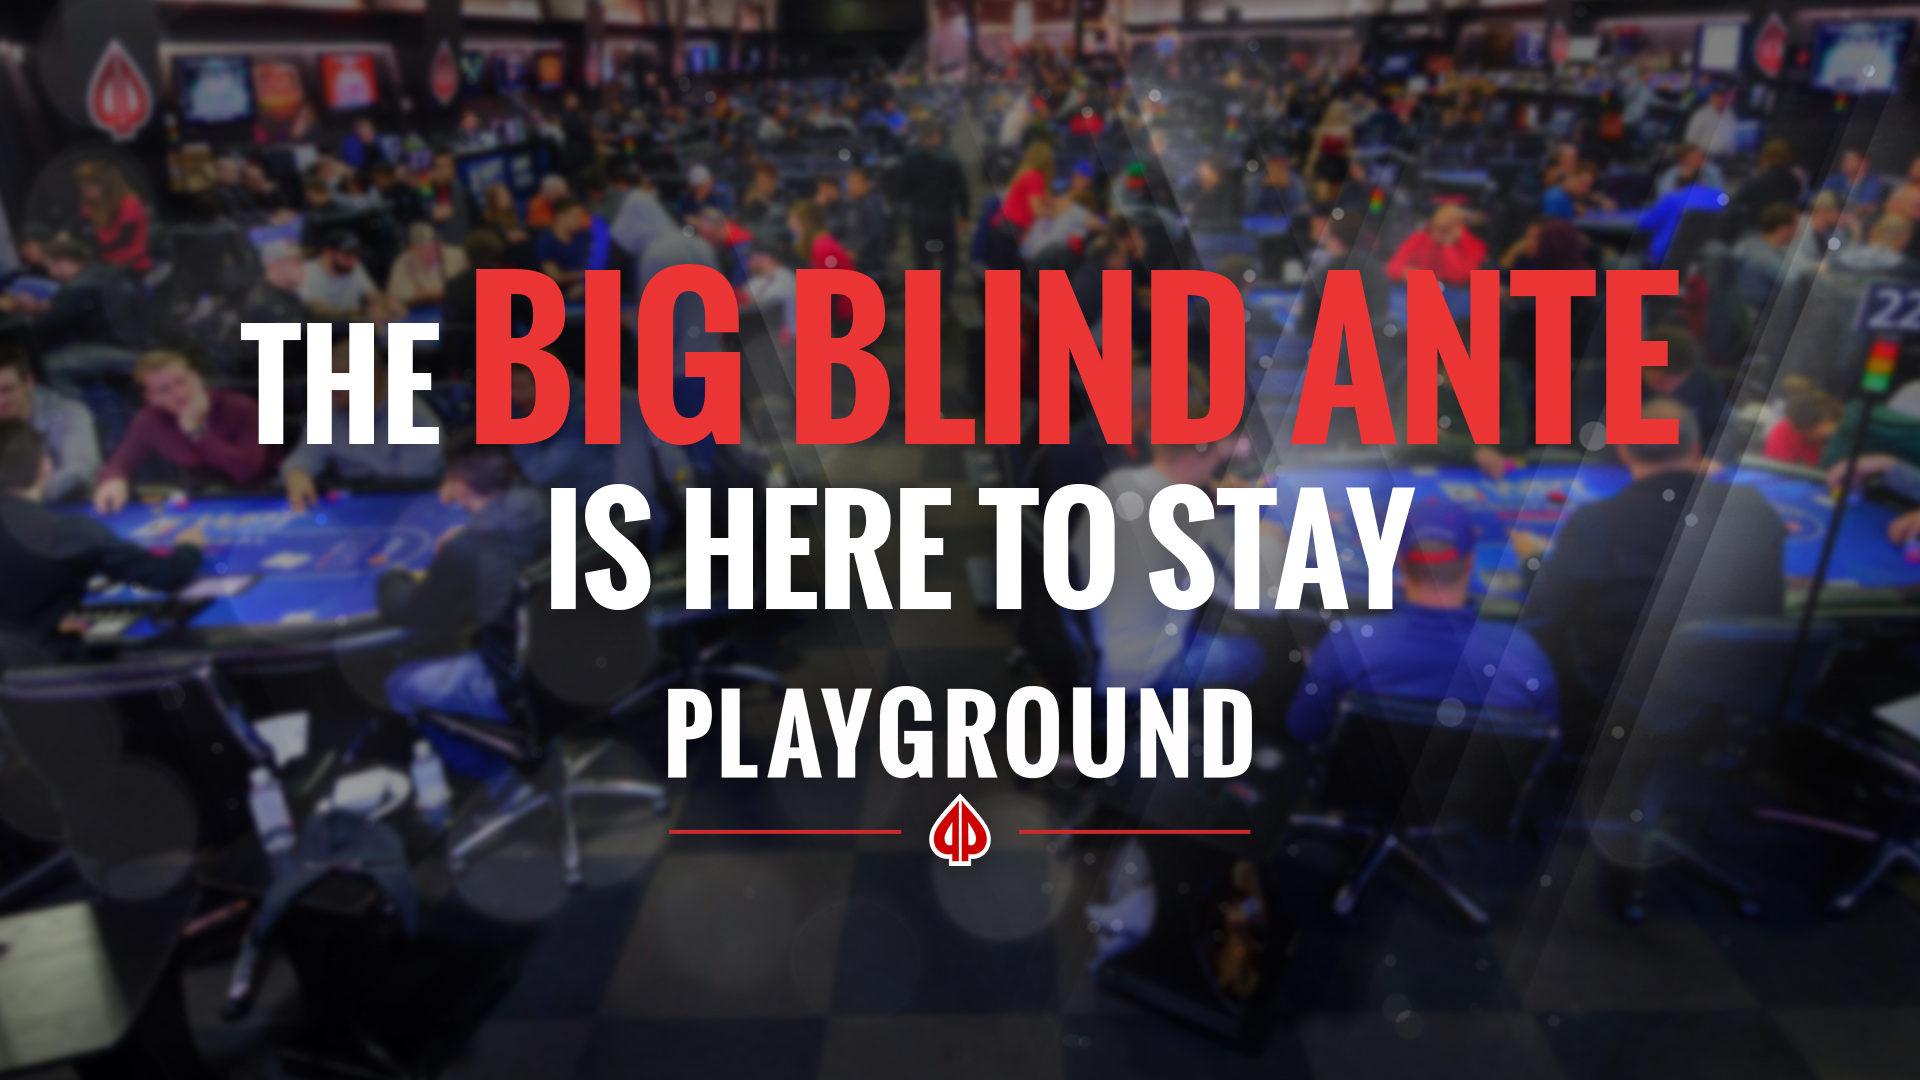 The big blind ante is here to stay!